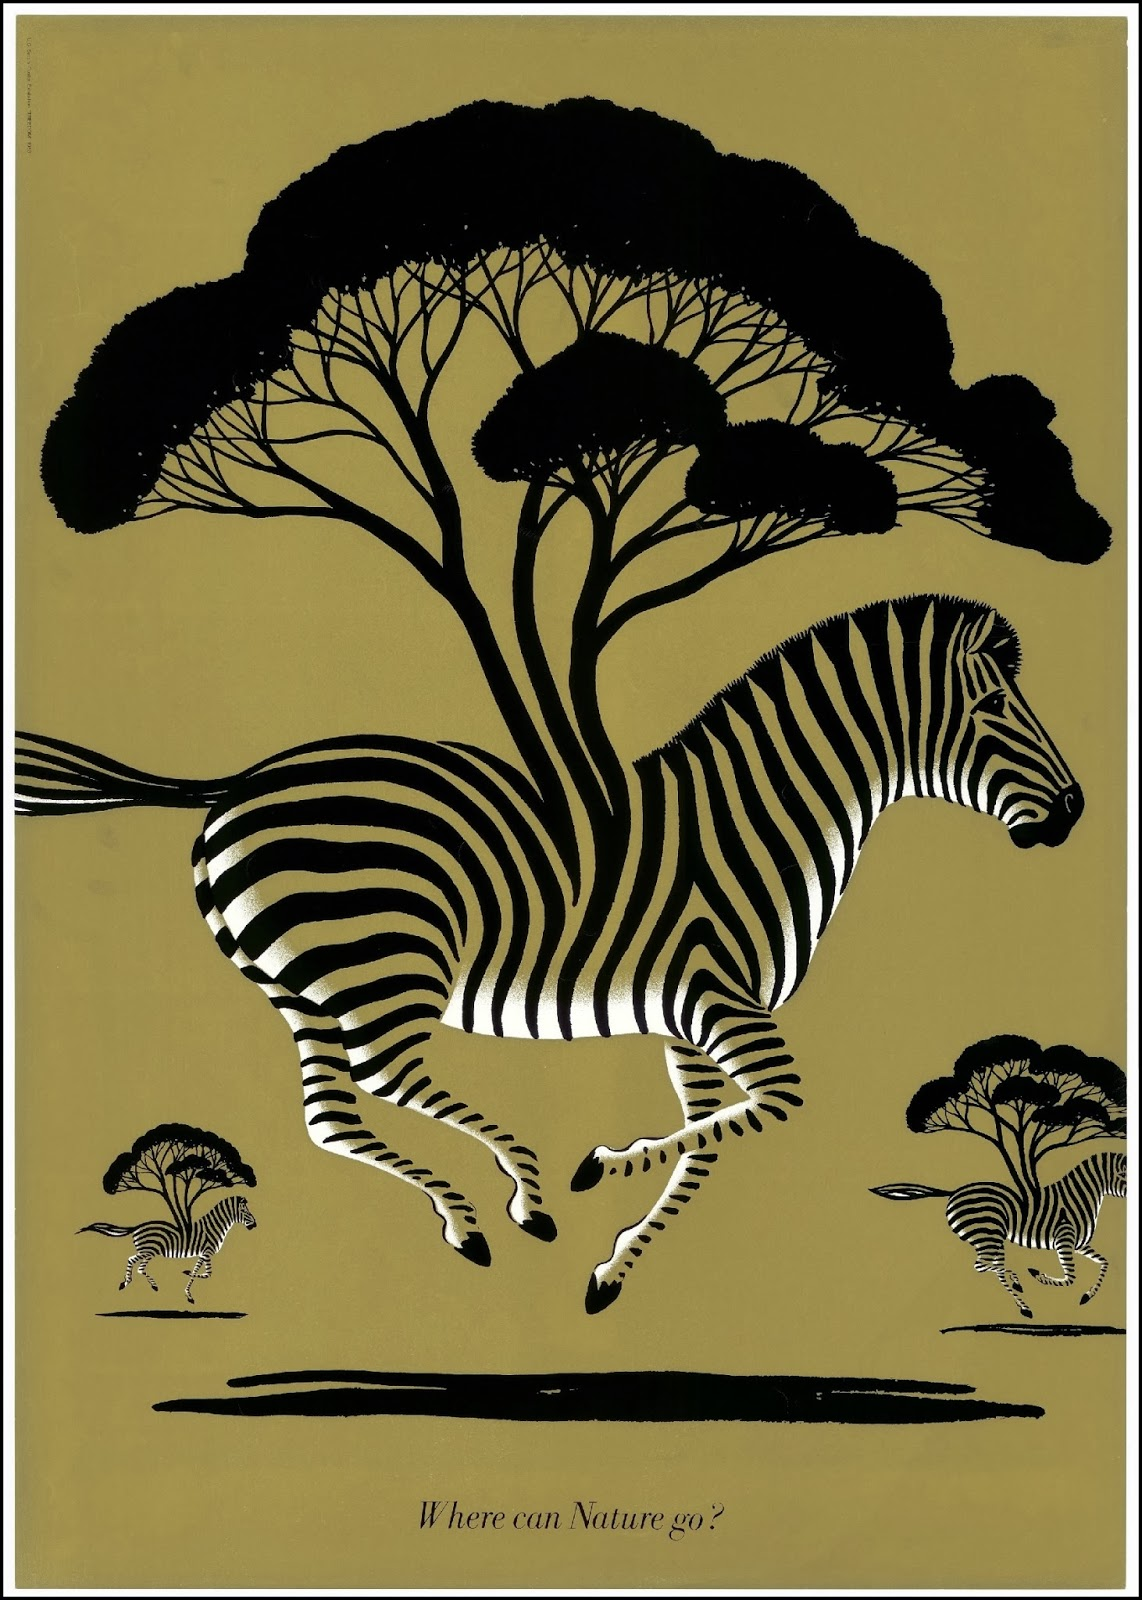 poster with gallopping zebras with trees growing out of their stripes